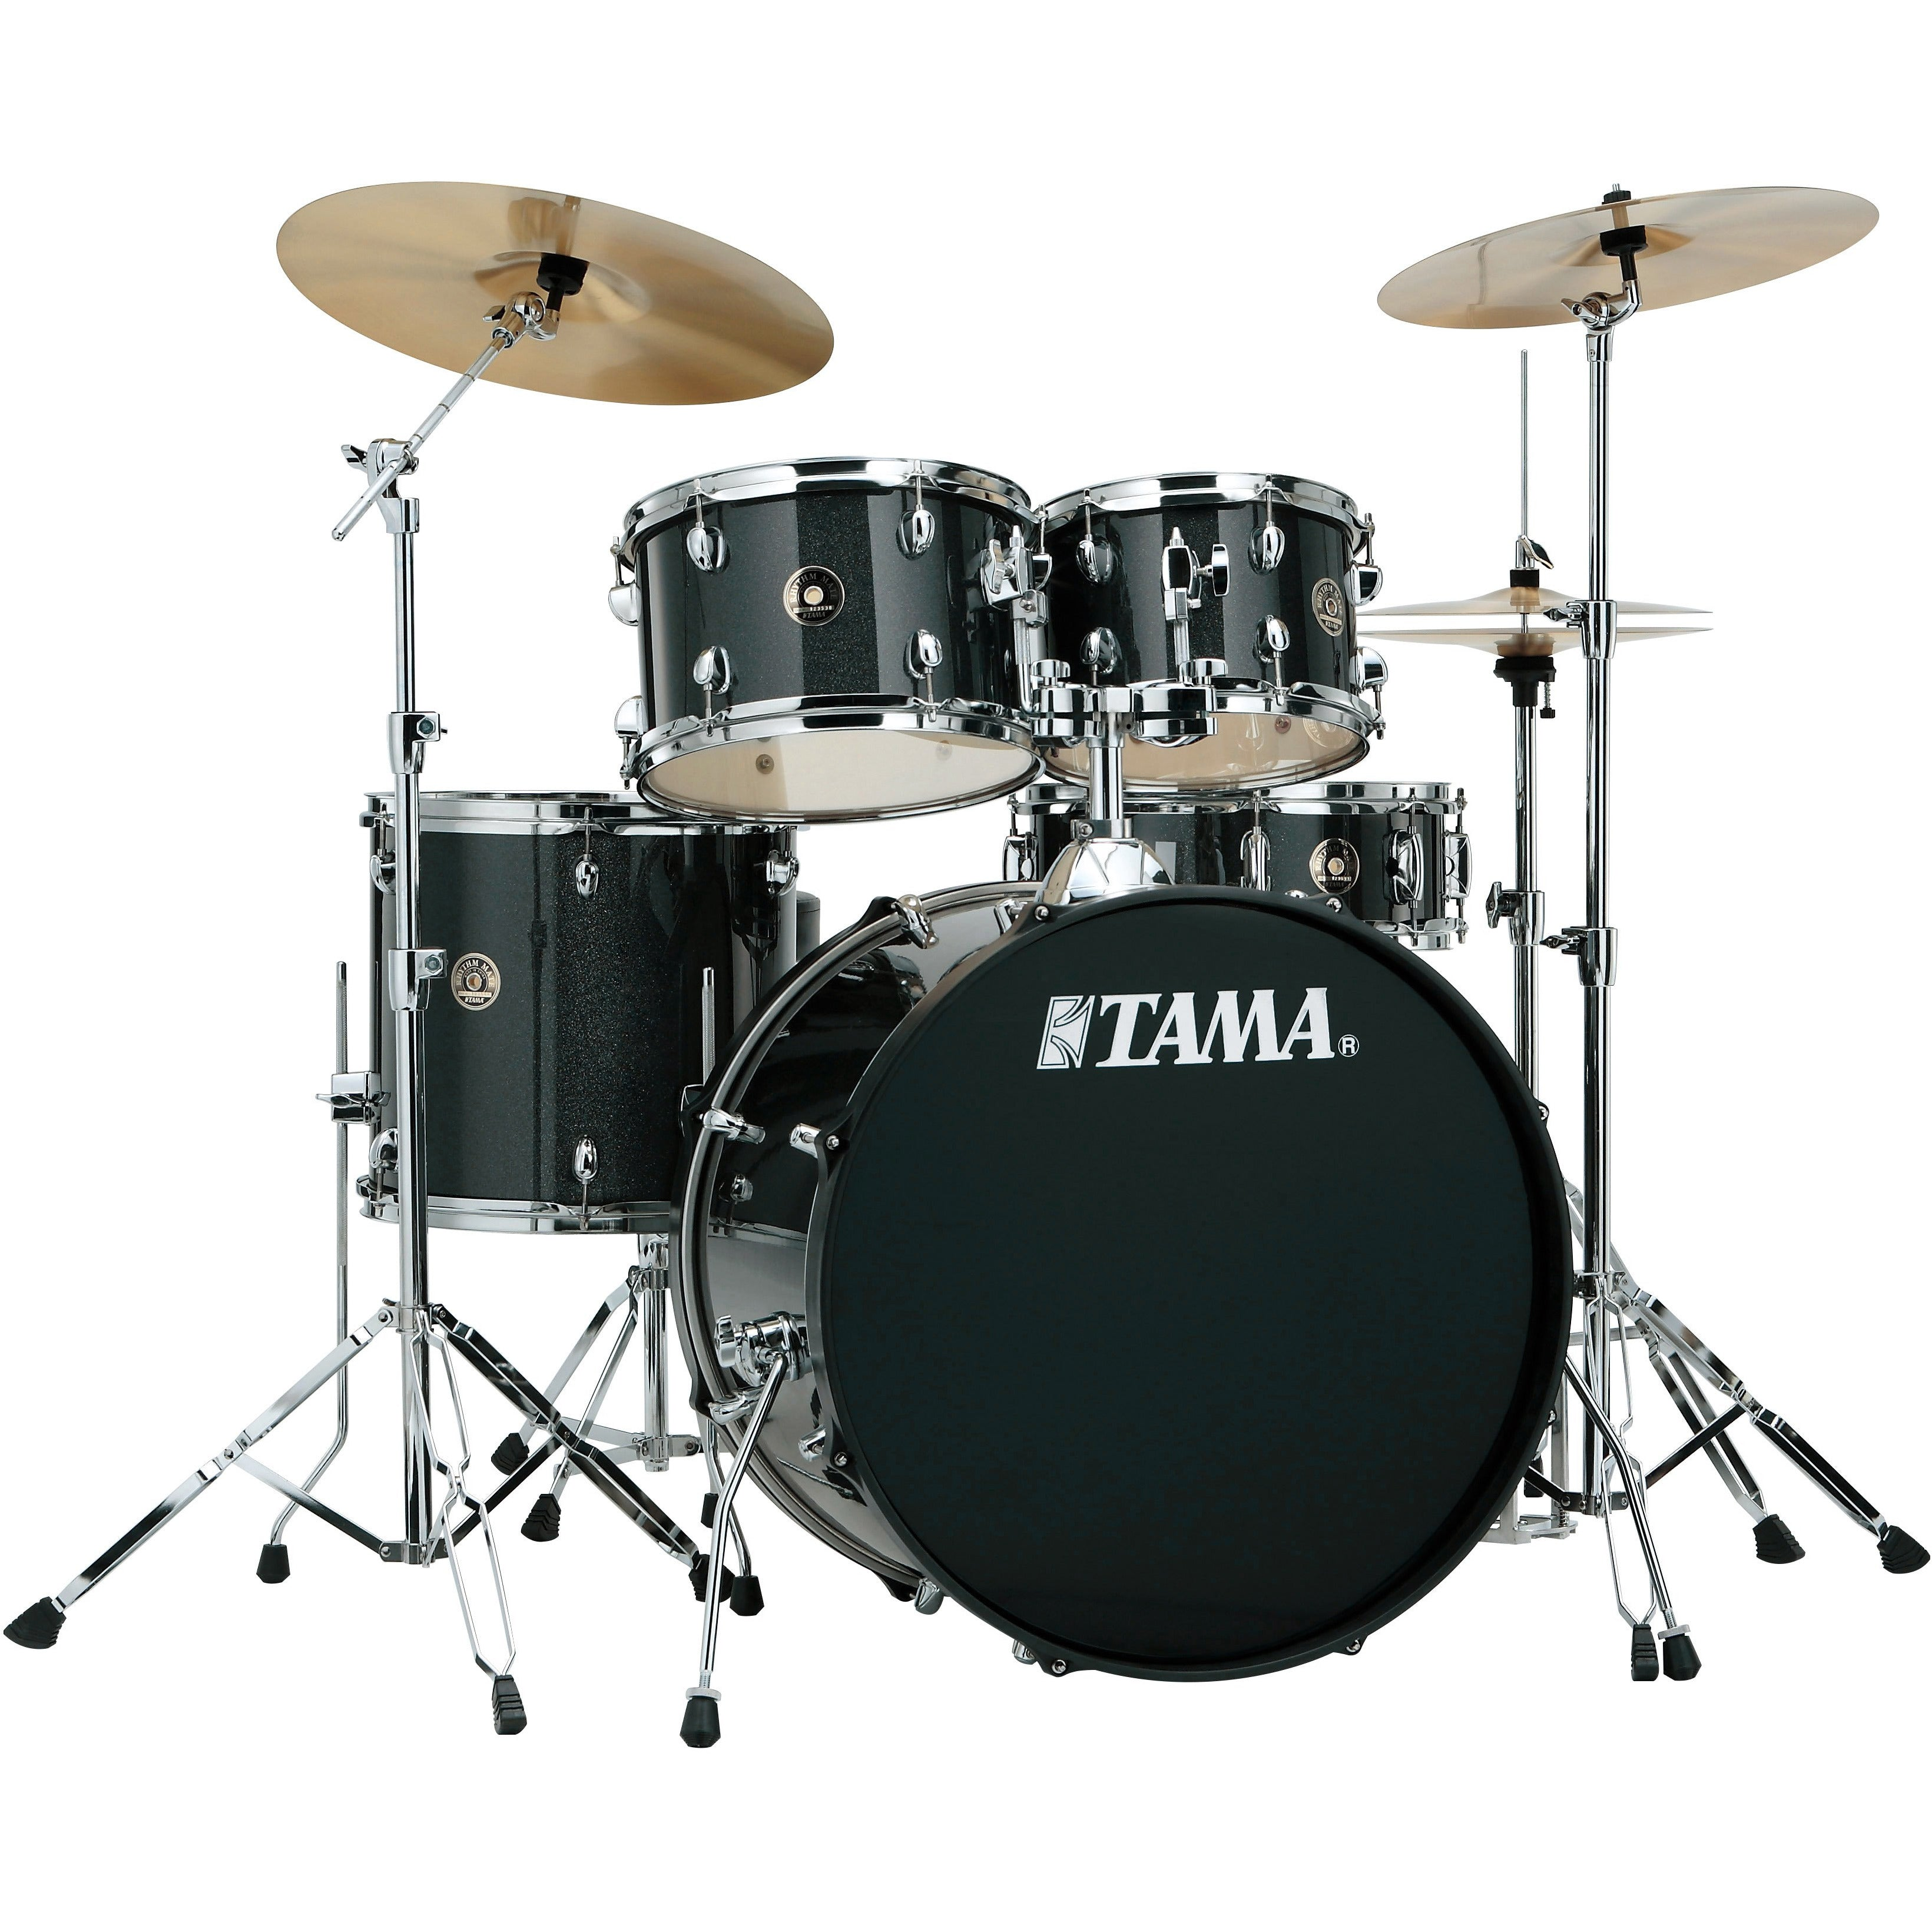 TAMA RHYTHM MATE DRUM KIT Charcoal Mist